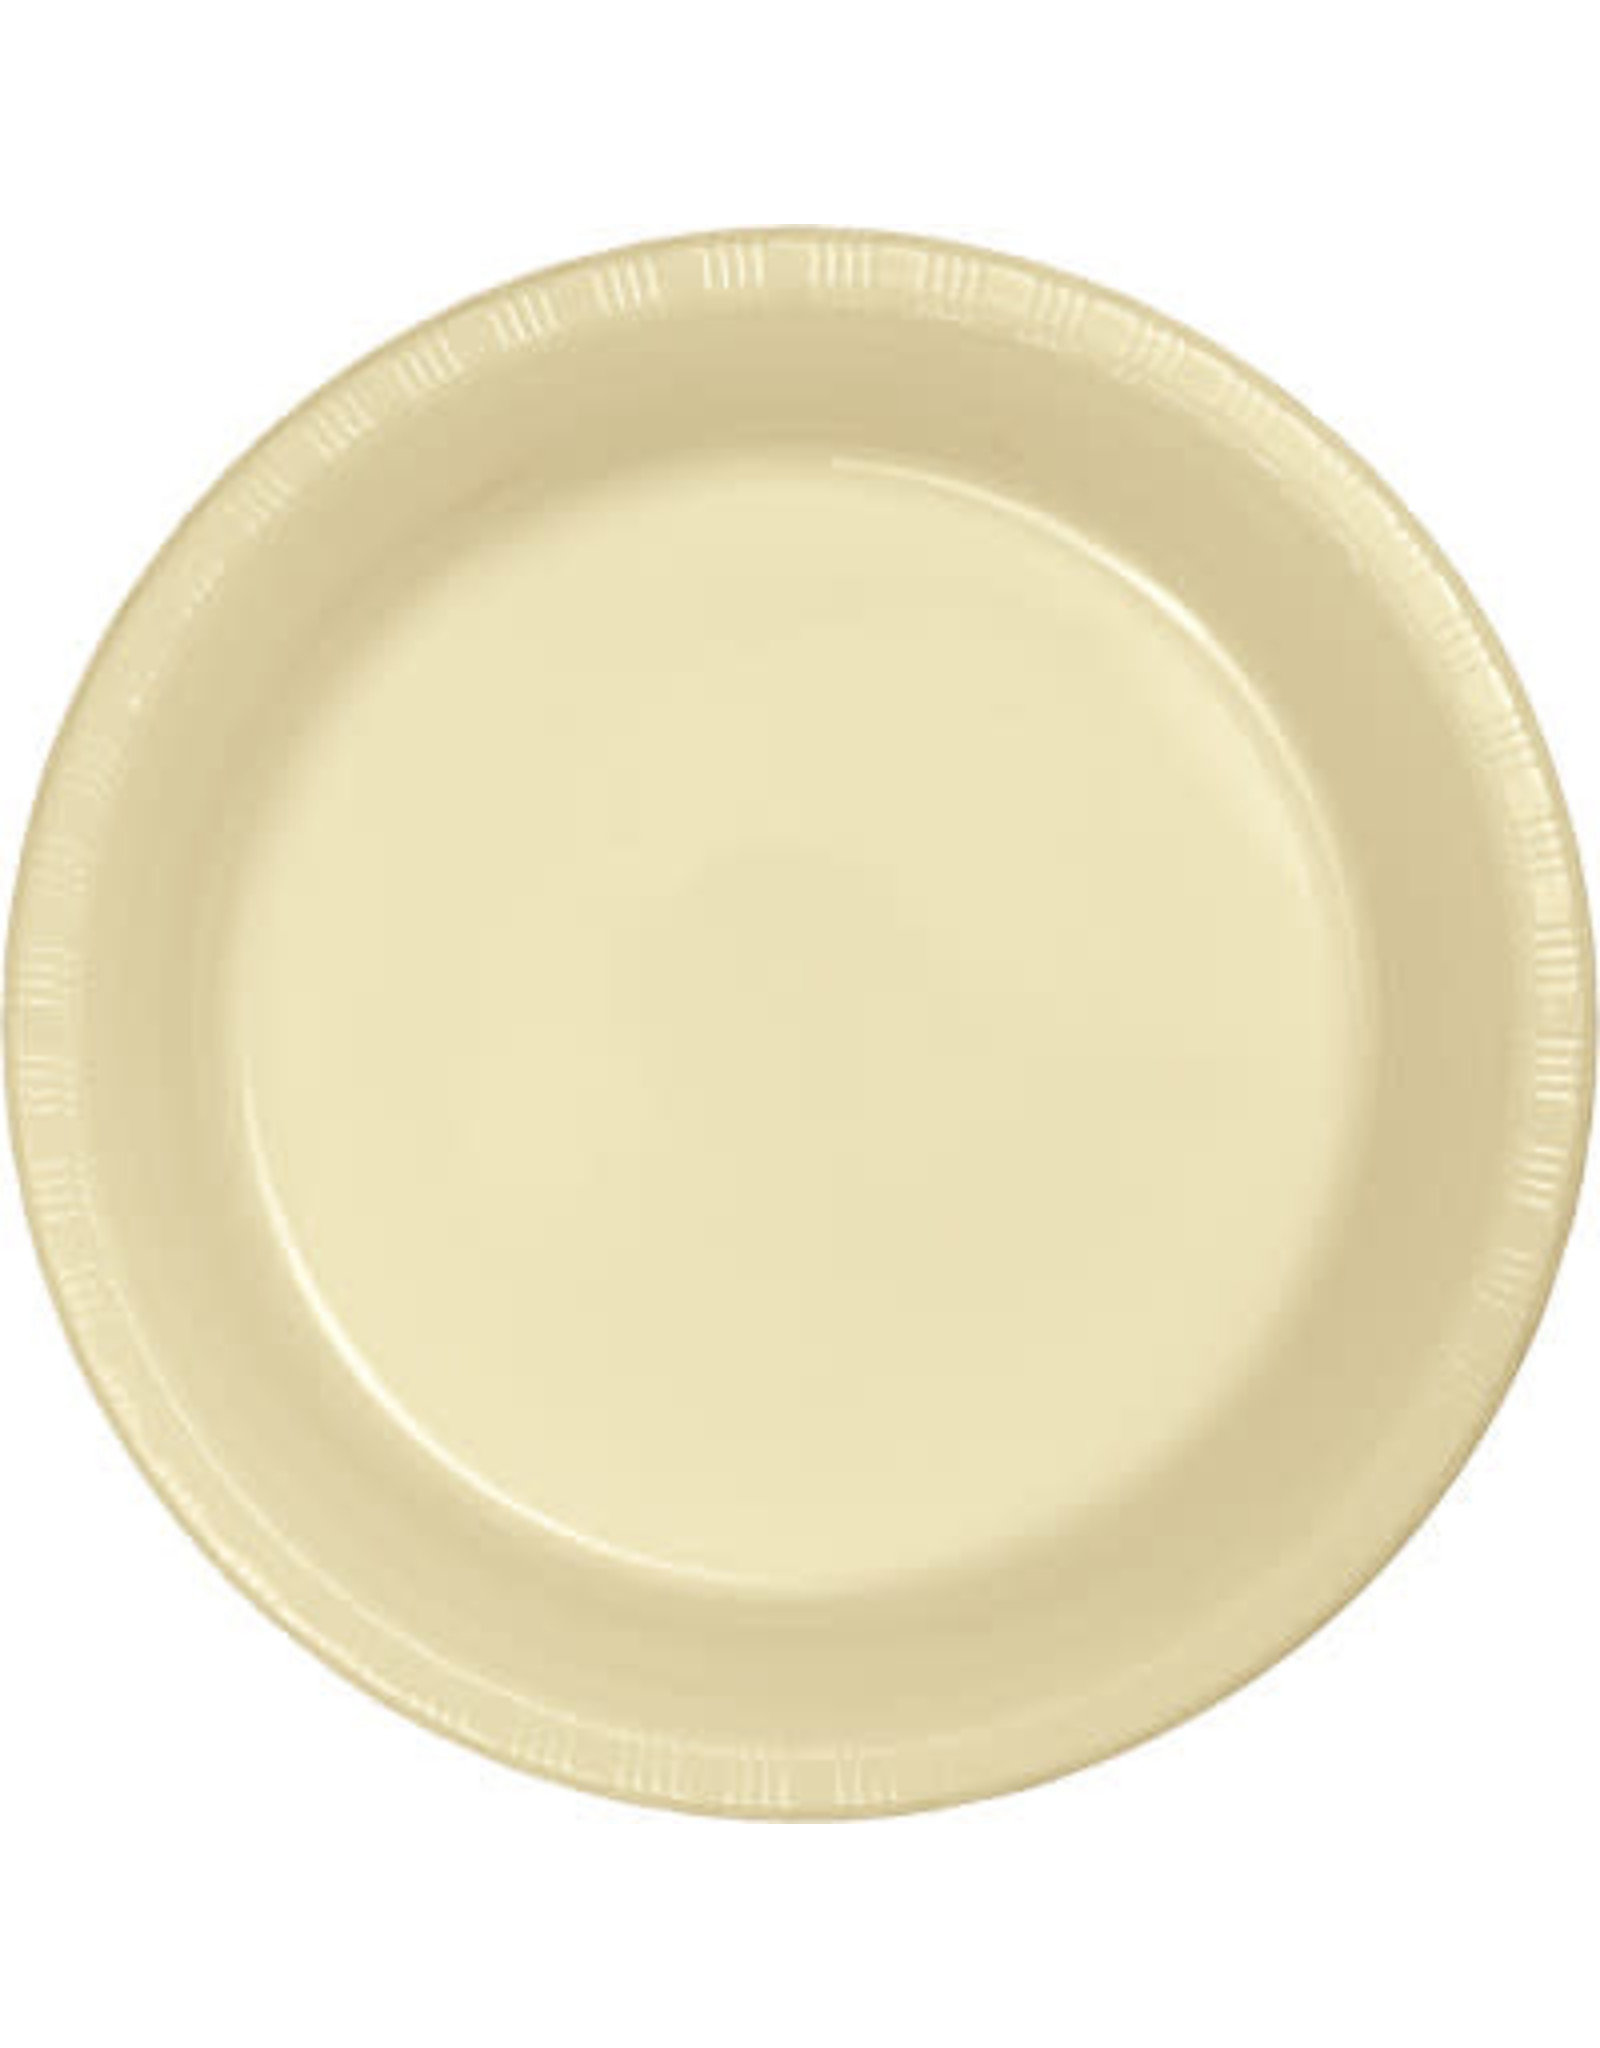 Touch of Color IVORY PLASTIC BANQUET PLATES